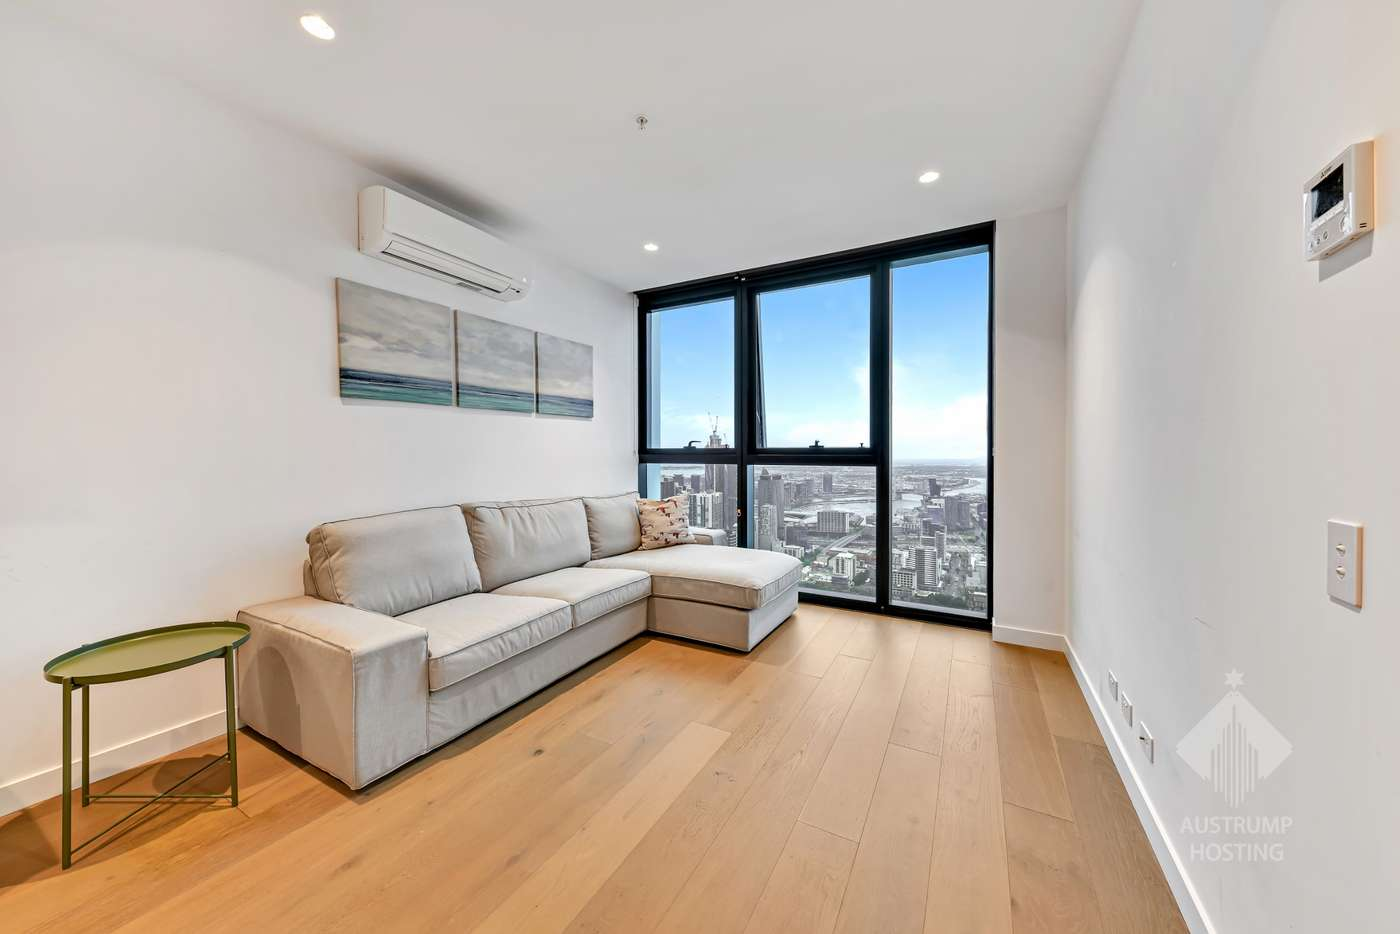 Sixth view of Homely apartment listing, 6707/462 Elizabeth Street, Melbourne VIC 3000